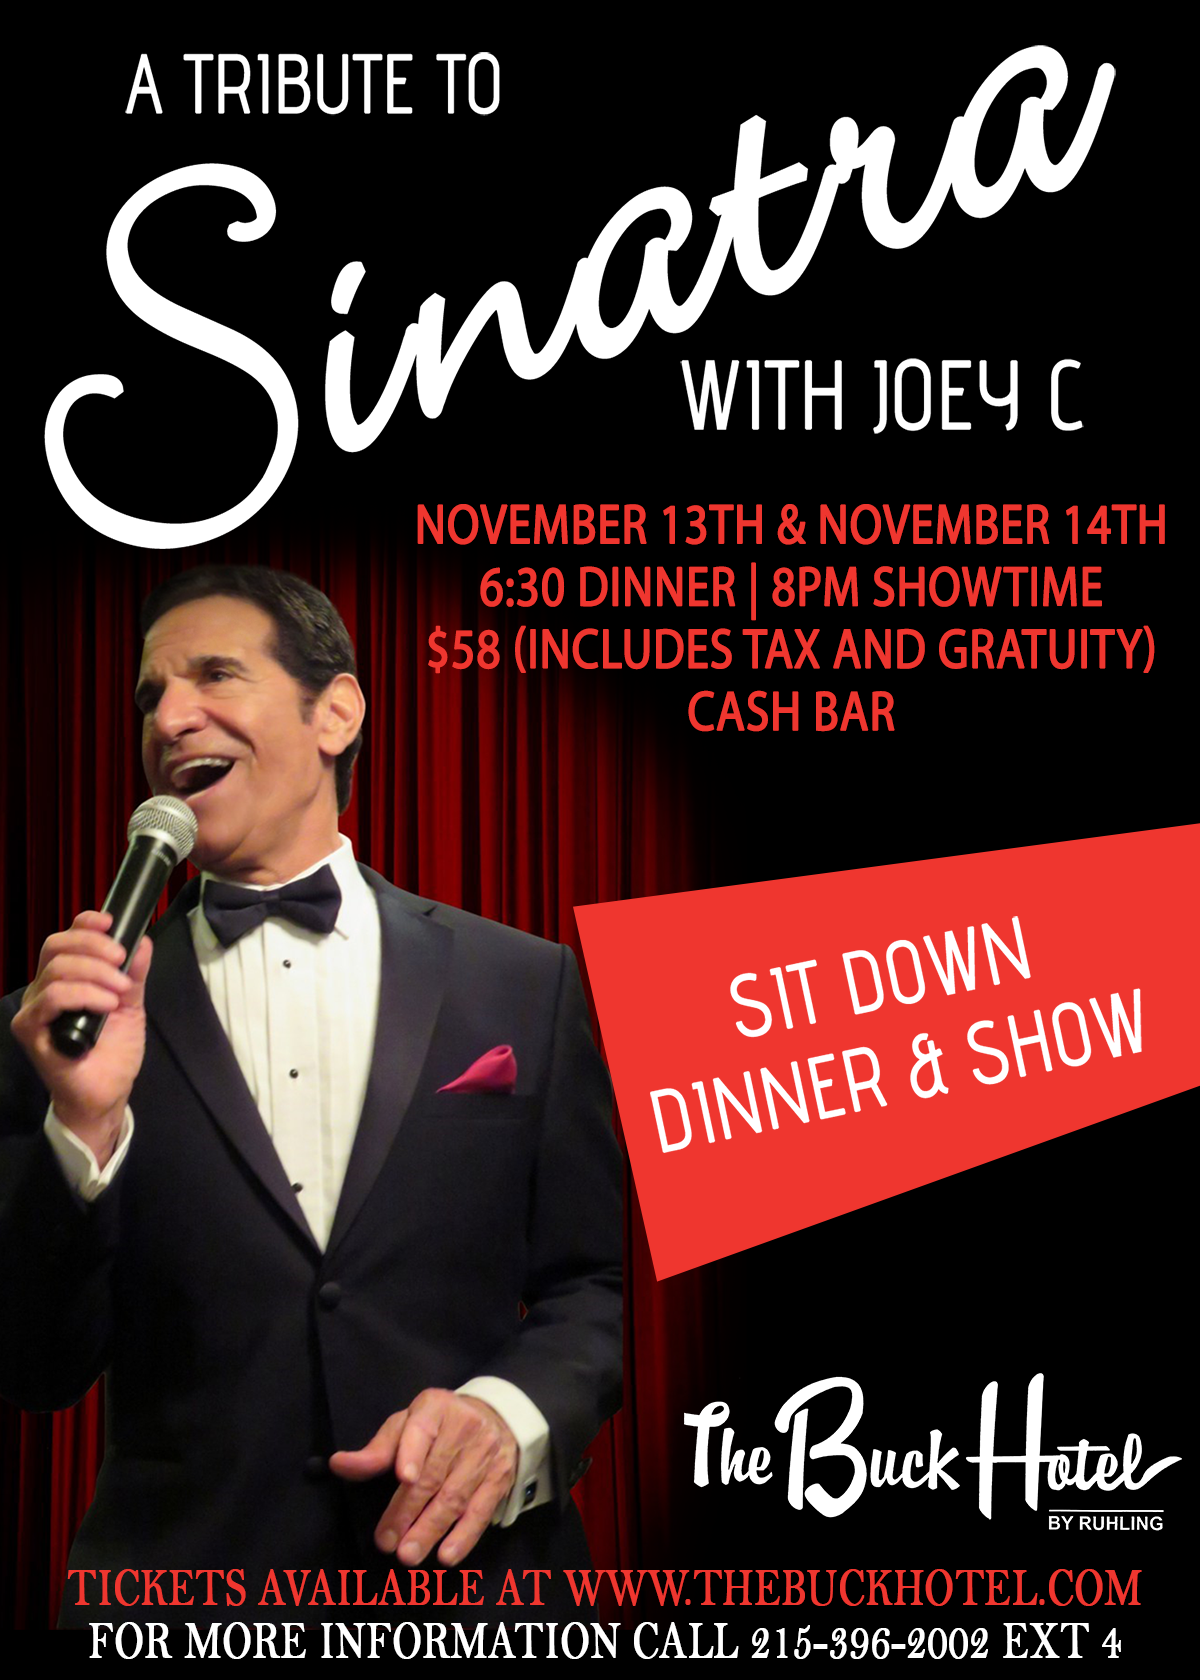 A tribute to Sinatra with Joey C. November 13th & November 14th. 6:30 dinner | 8PM Showtimes. $58 includes tax and gratuity. Cash bar. Sit down dinner and show. Tickets available at www.thebuckhotel.com. For more information call 215-396-2002 ext 4.